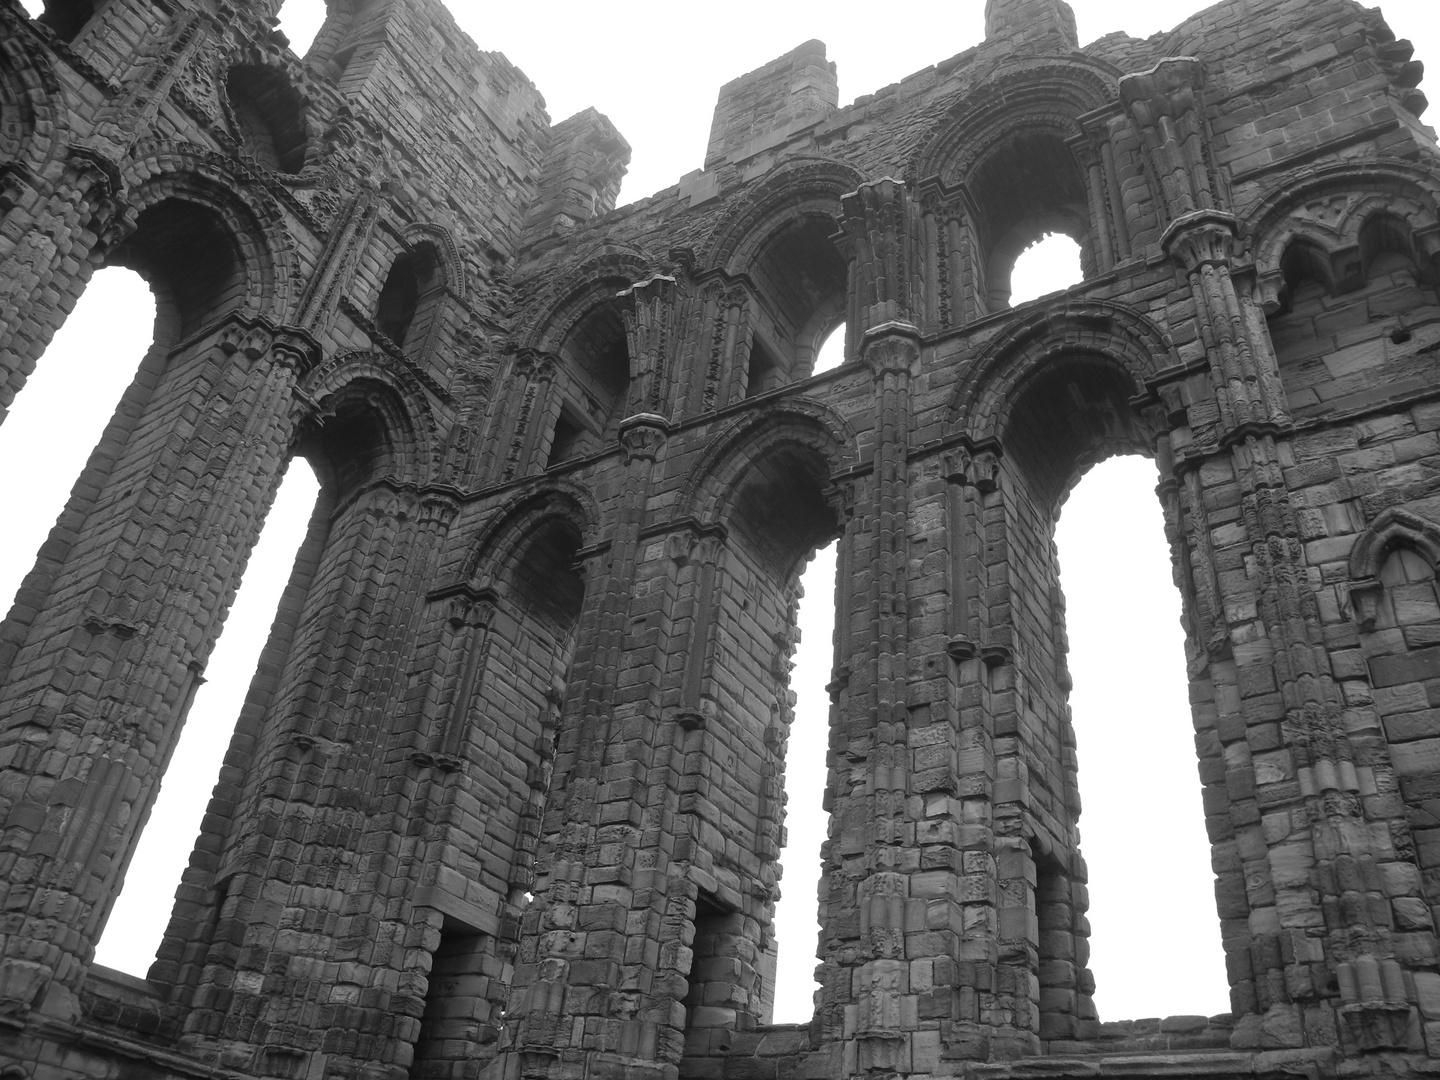 Tynemouth Priory, England